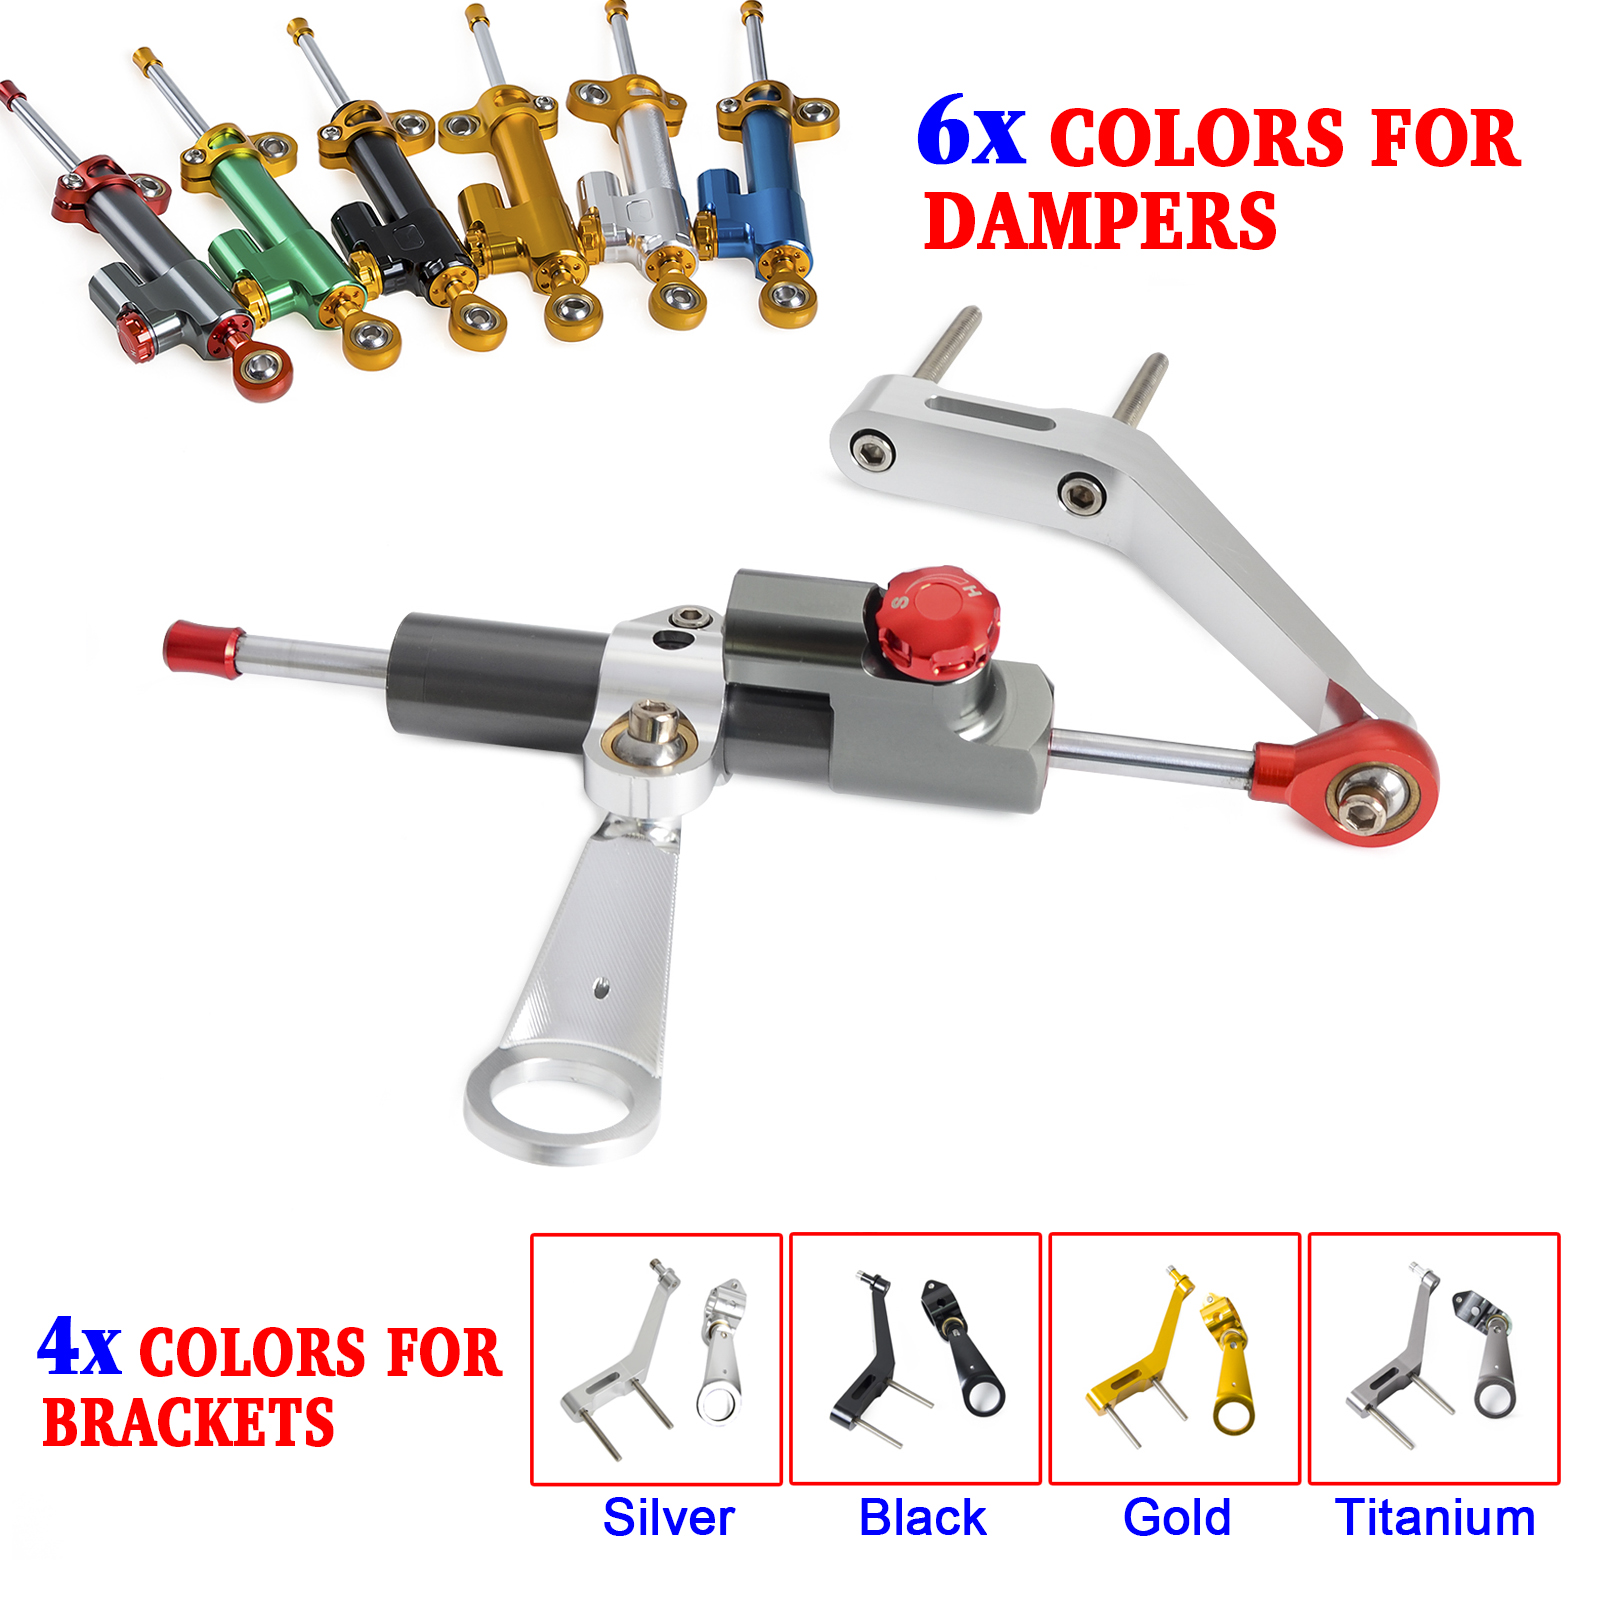 Motorcycle CNC Steering Damper Stabilizer & Bracket Kit For Honda CBR954RR 2002 2003 CBR 954 RR 954RR стоимость